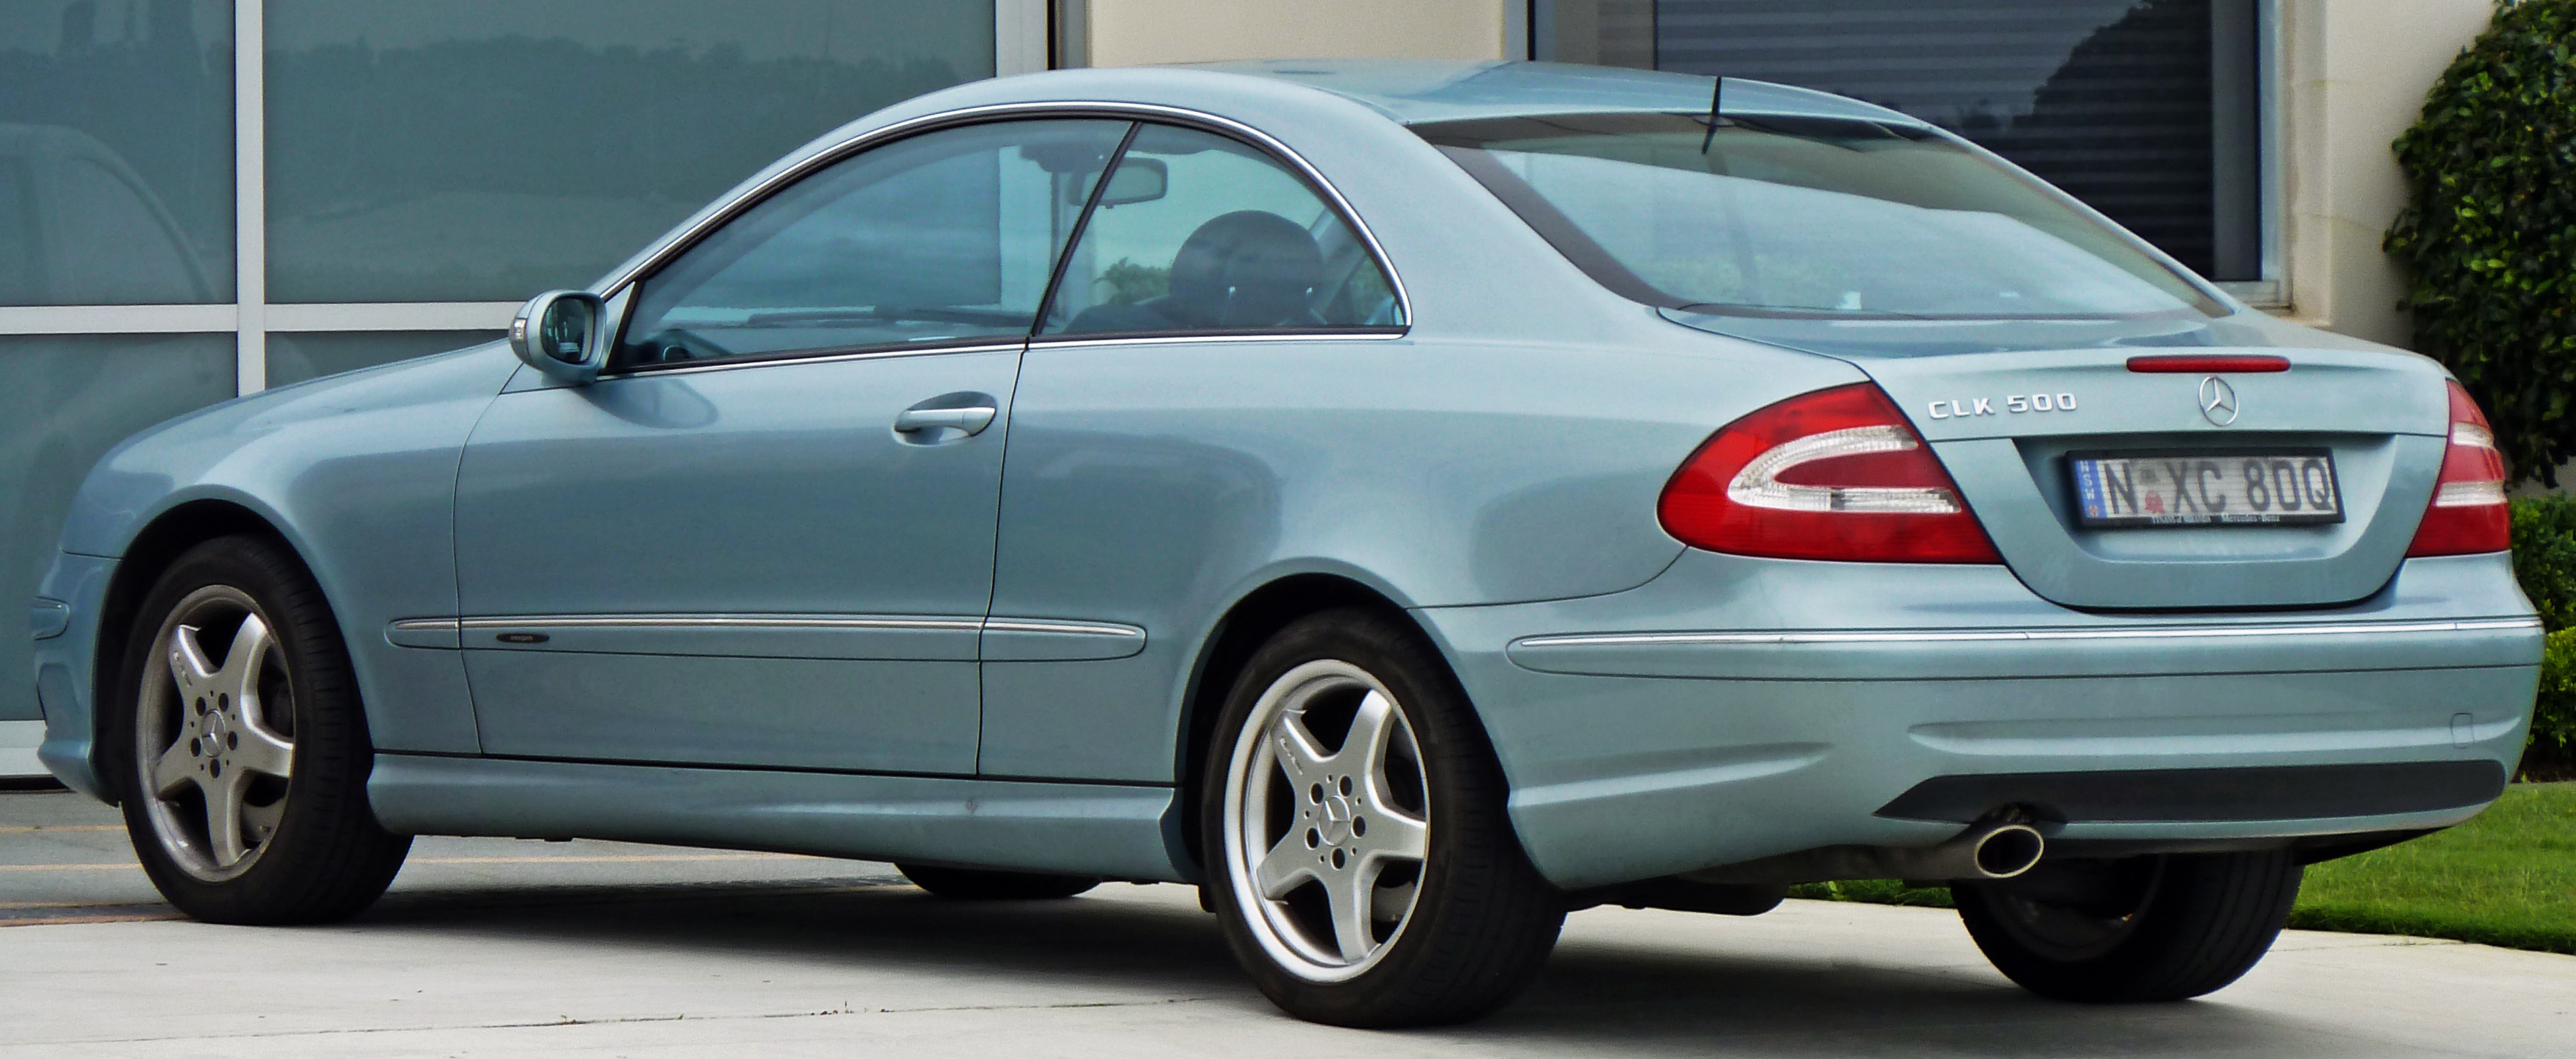 Mercedes benz clk 500 photos reviews news specs buy car for Mercedes benz specs